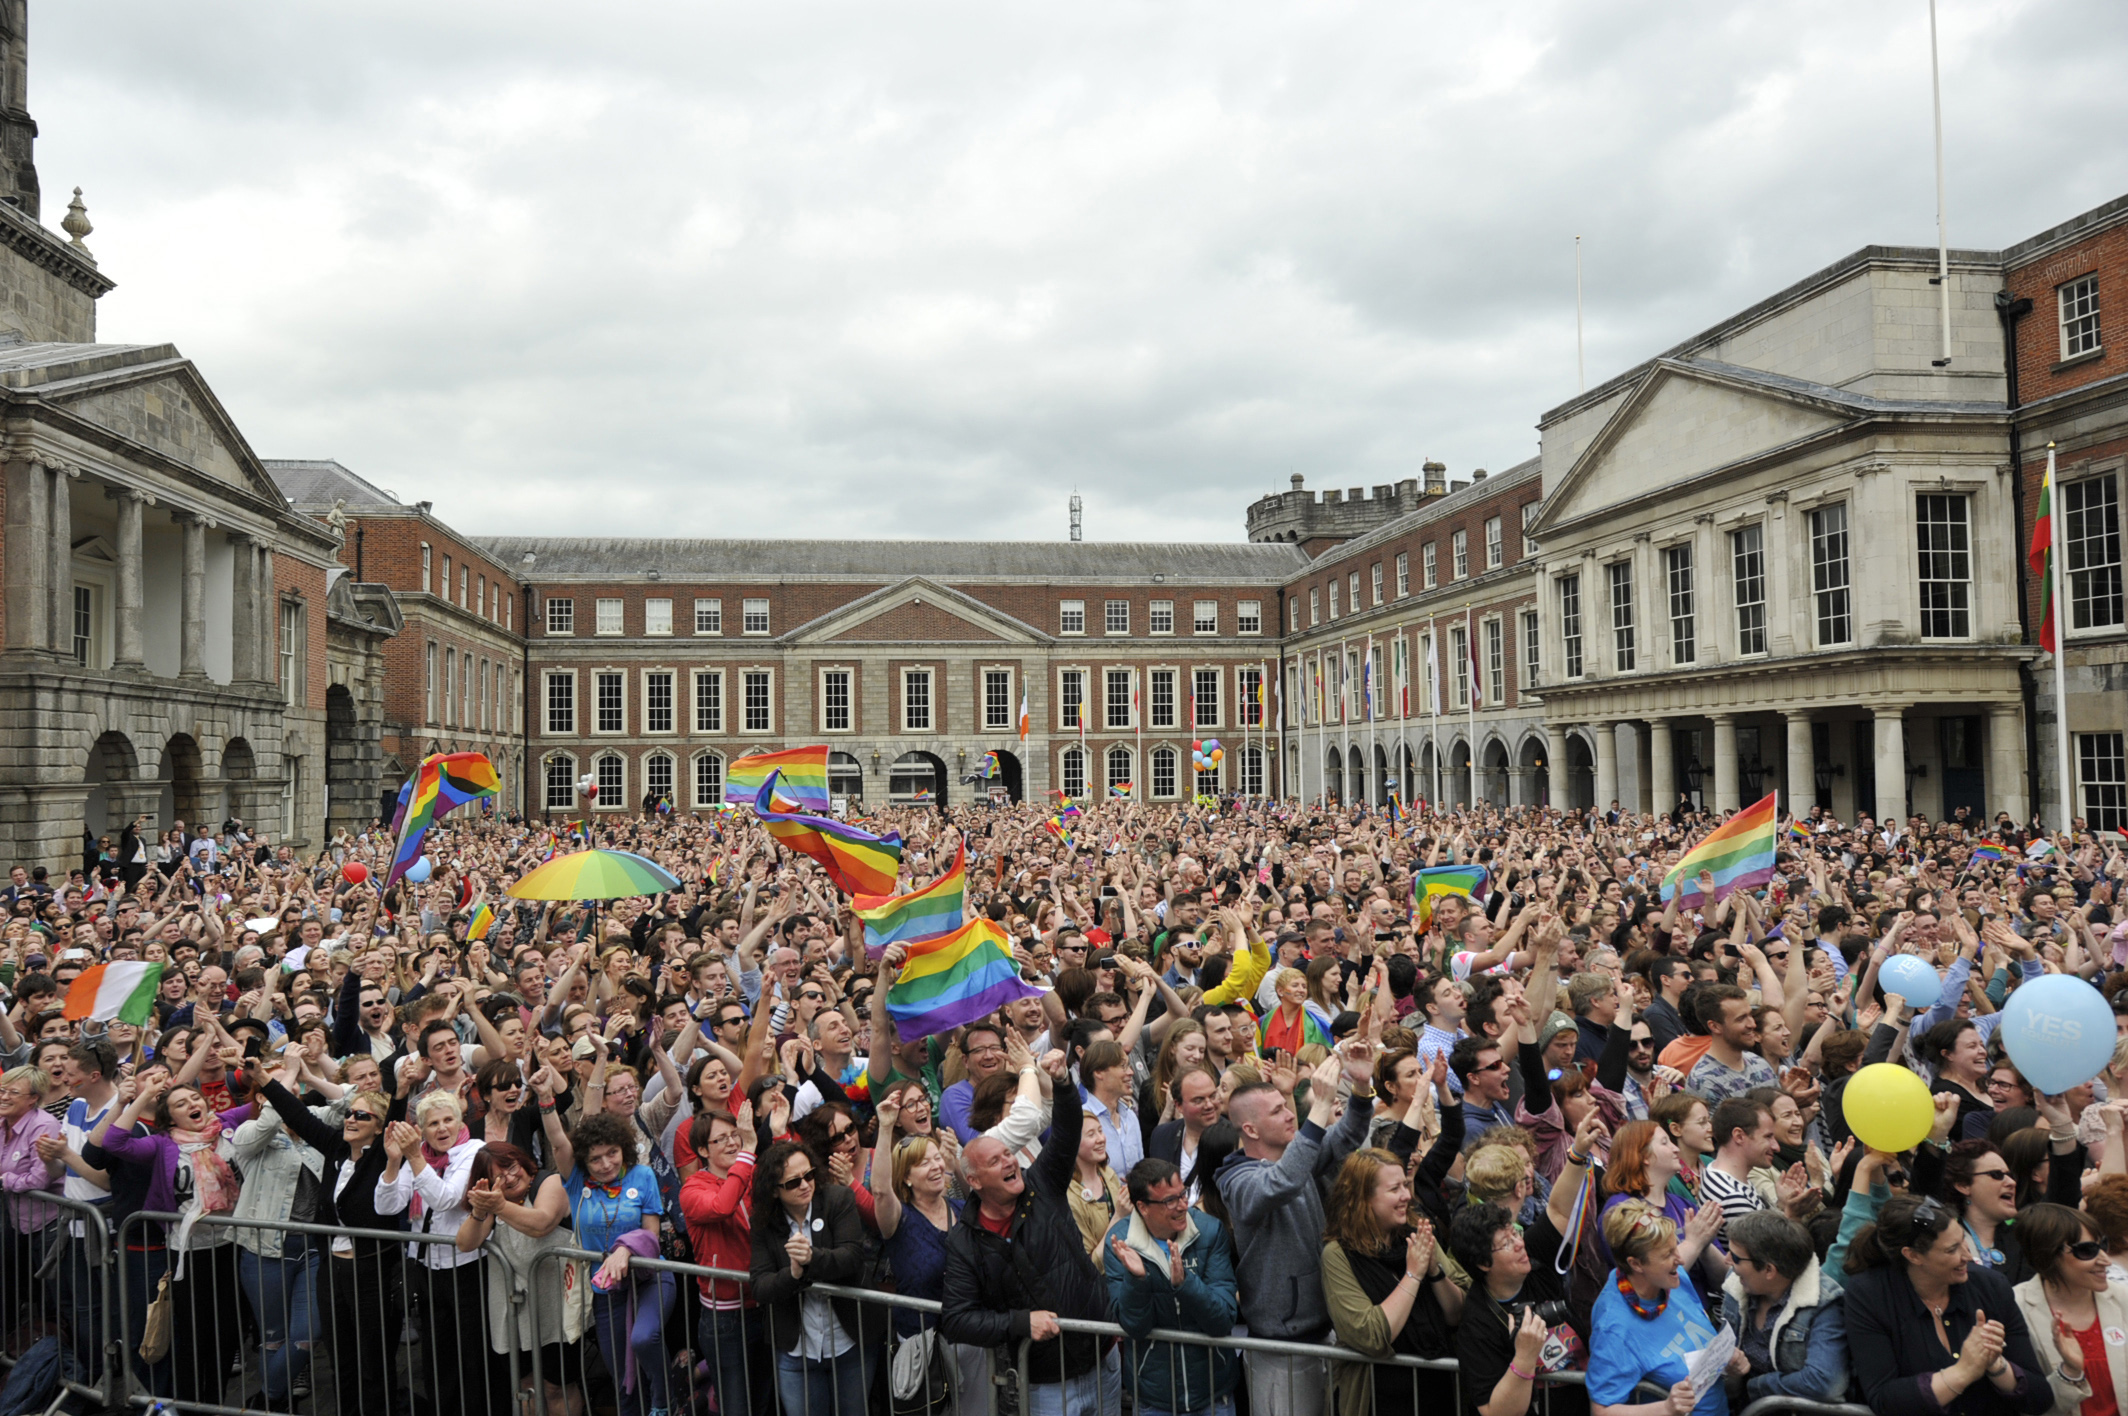 People celebrate a landslide victory of a Yes vote after a referendum on same sex marriage was won by popular ballot vote by a margin of around two-to-one at Dublin Castle on May 23, 2015 in Dublin.